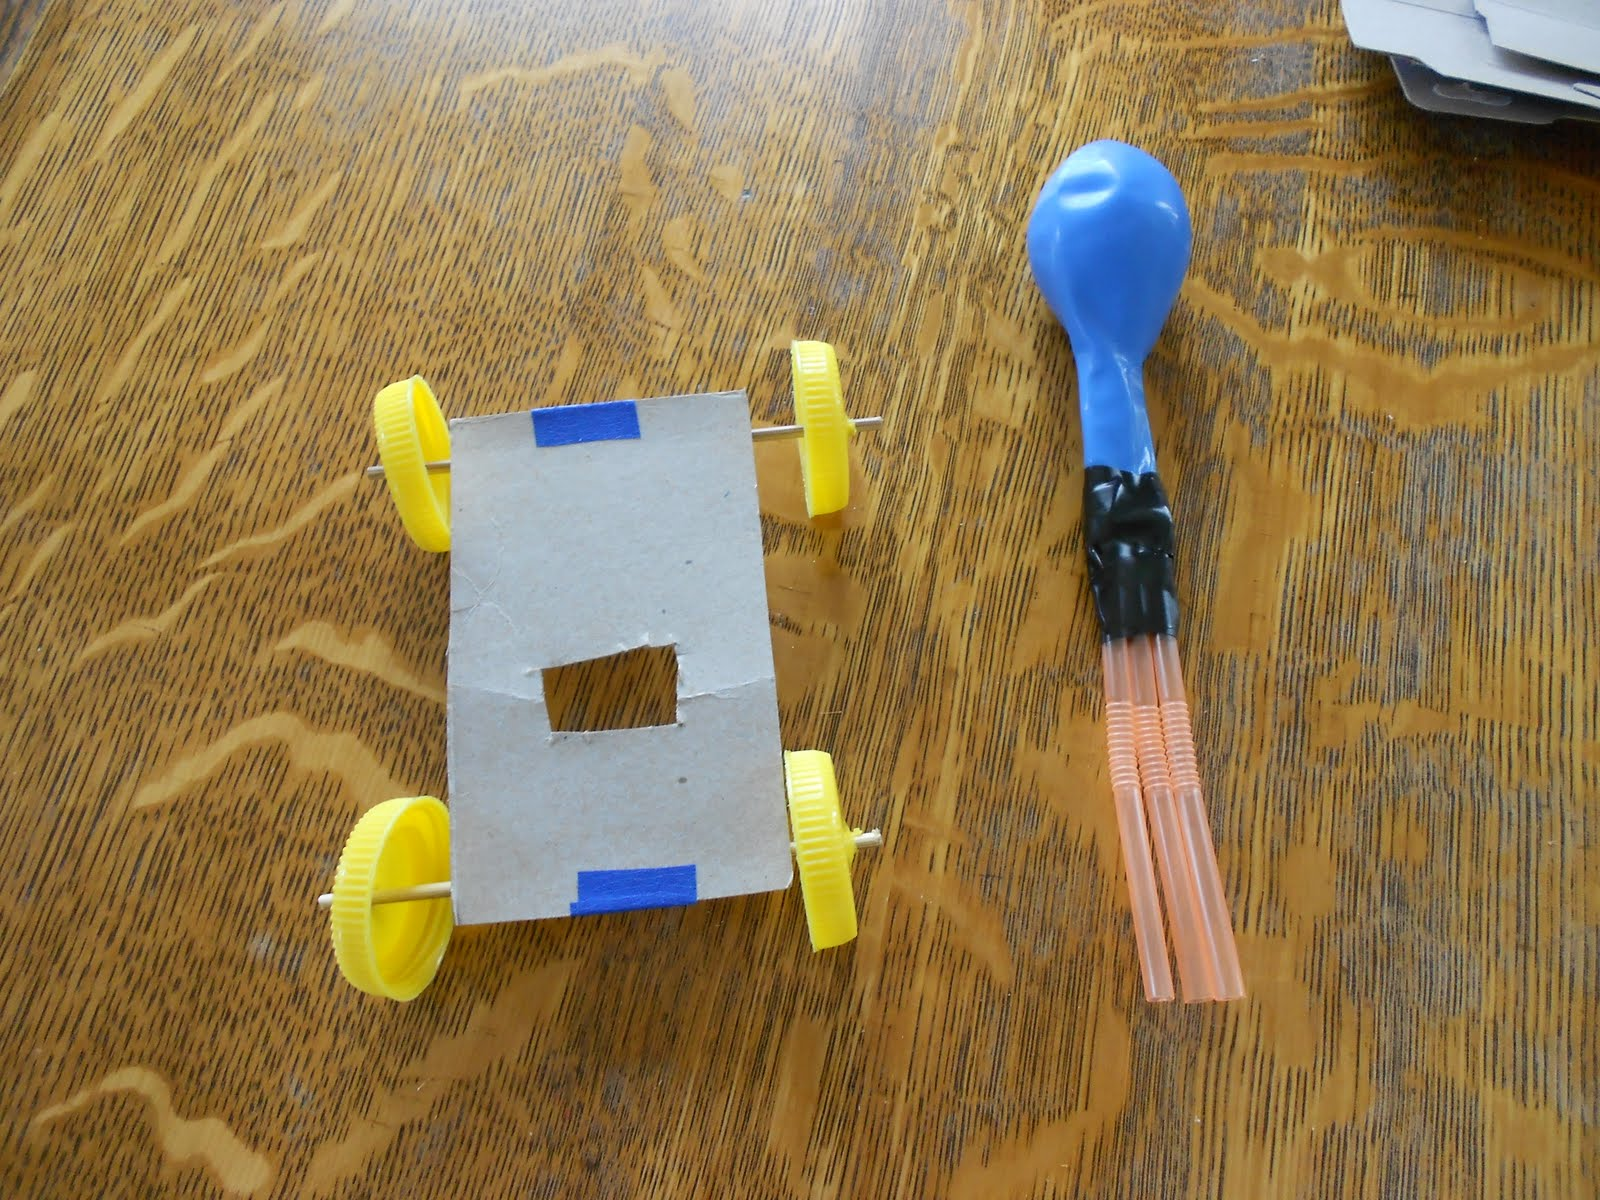 how to make a balloon powered car with cardboard